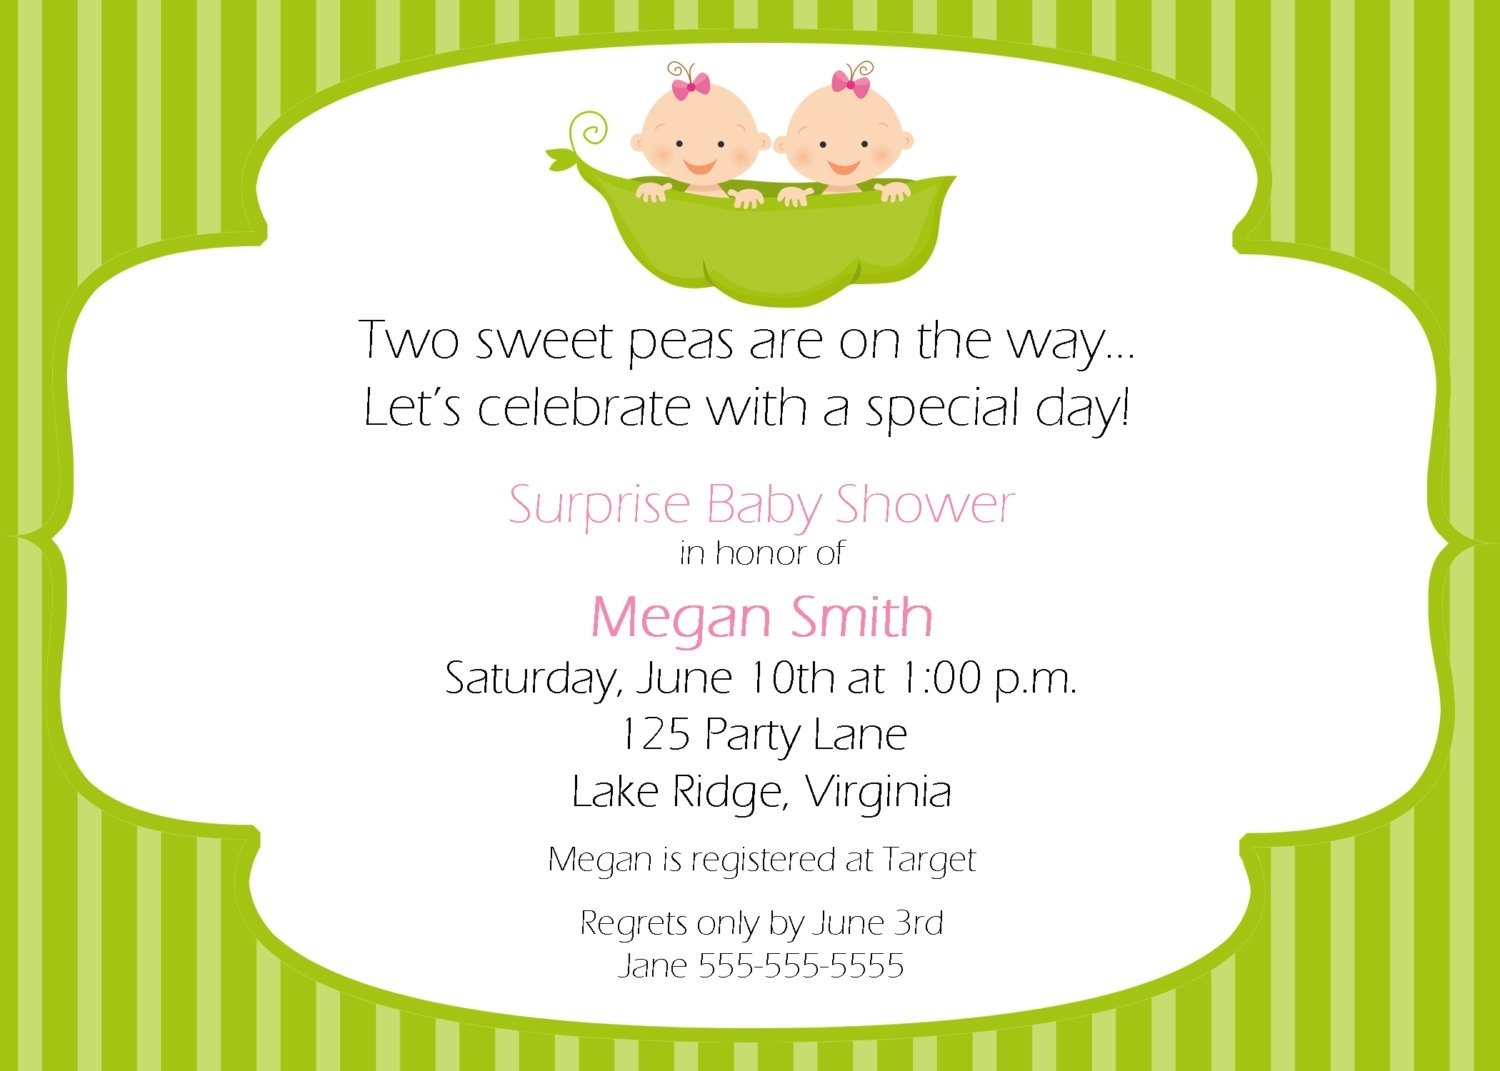 10 Most Recommended Two Peas In A Pod Baby Shower Ideas two peas in a pod baby shower theme ideas for twin free printable 2020